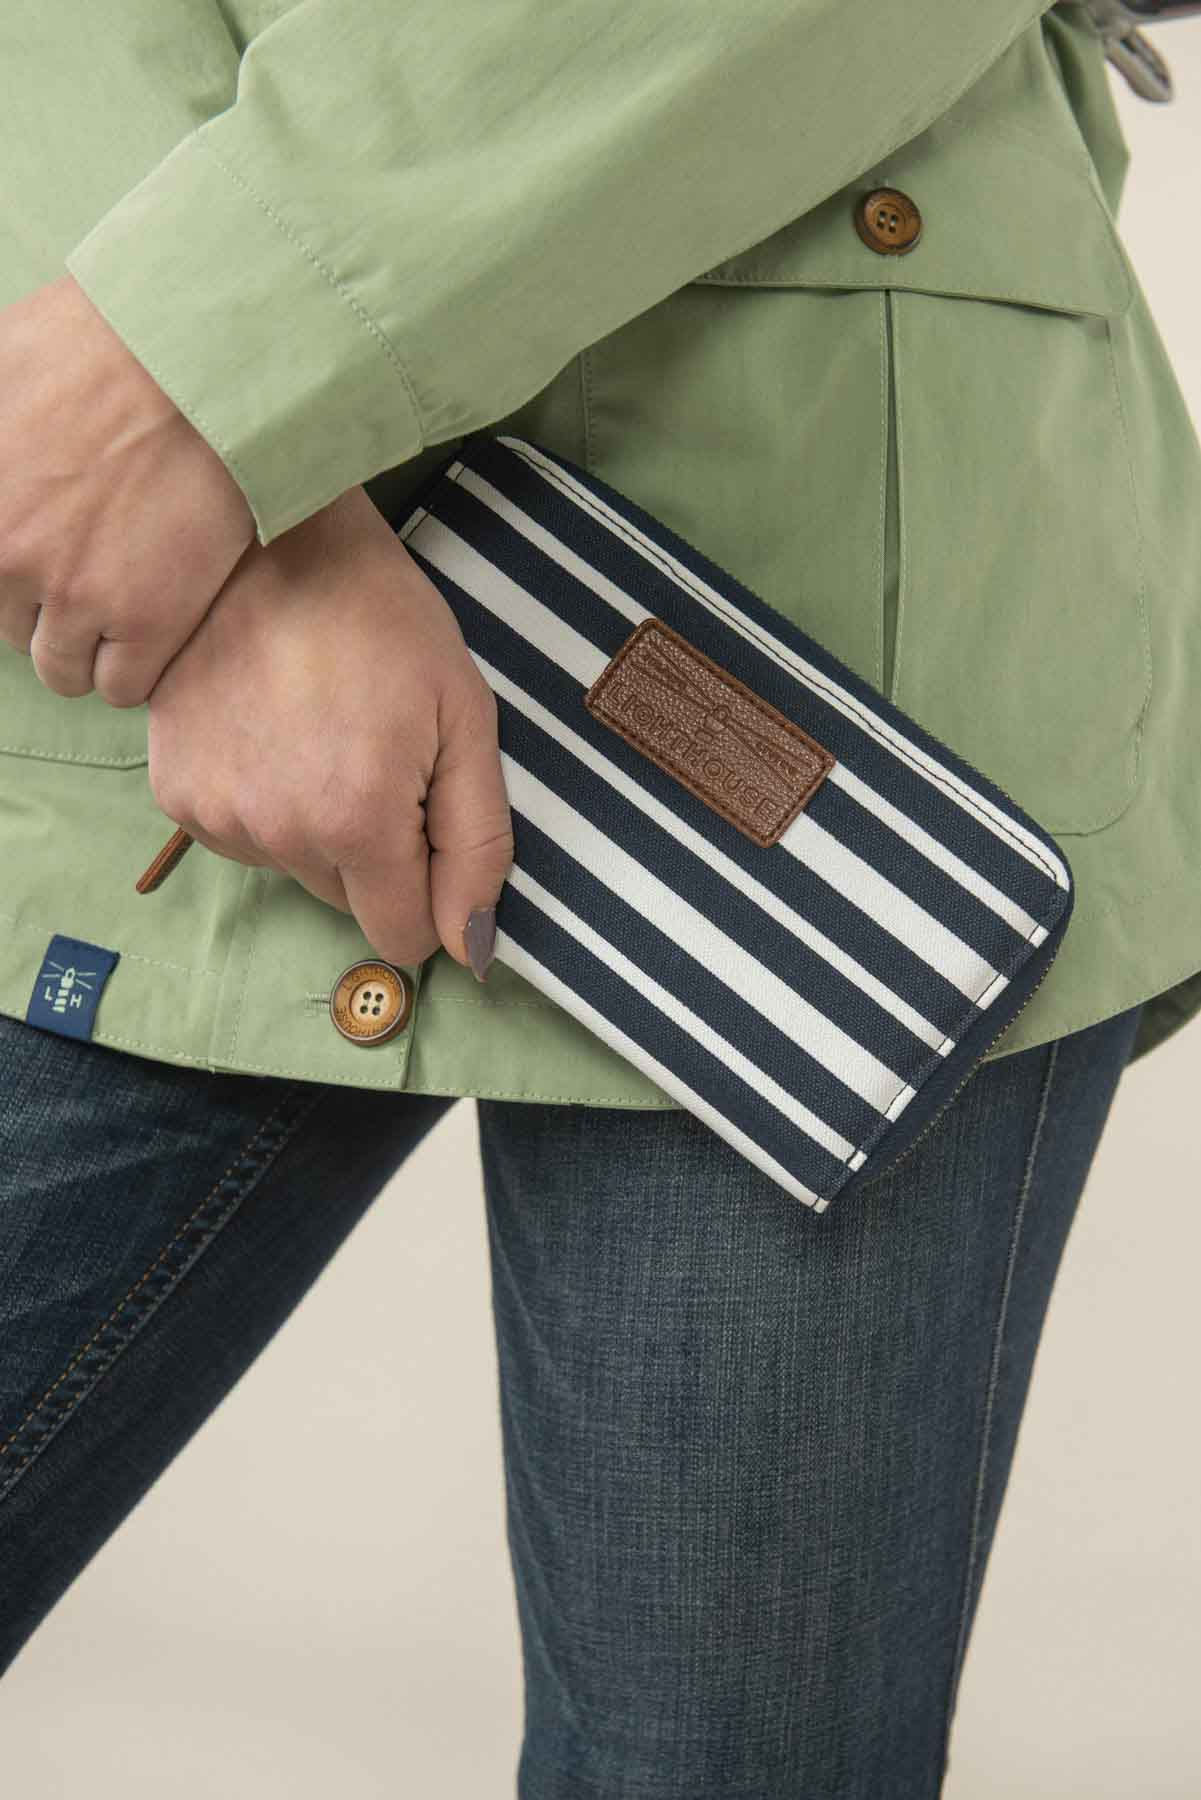 Women's Accessories - Navy striped purse